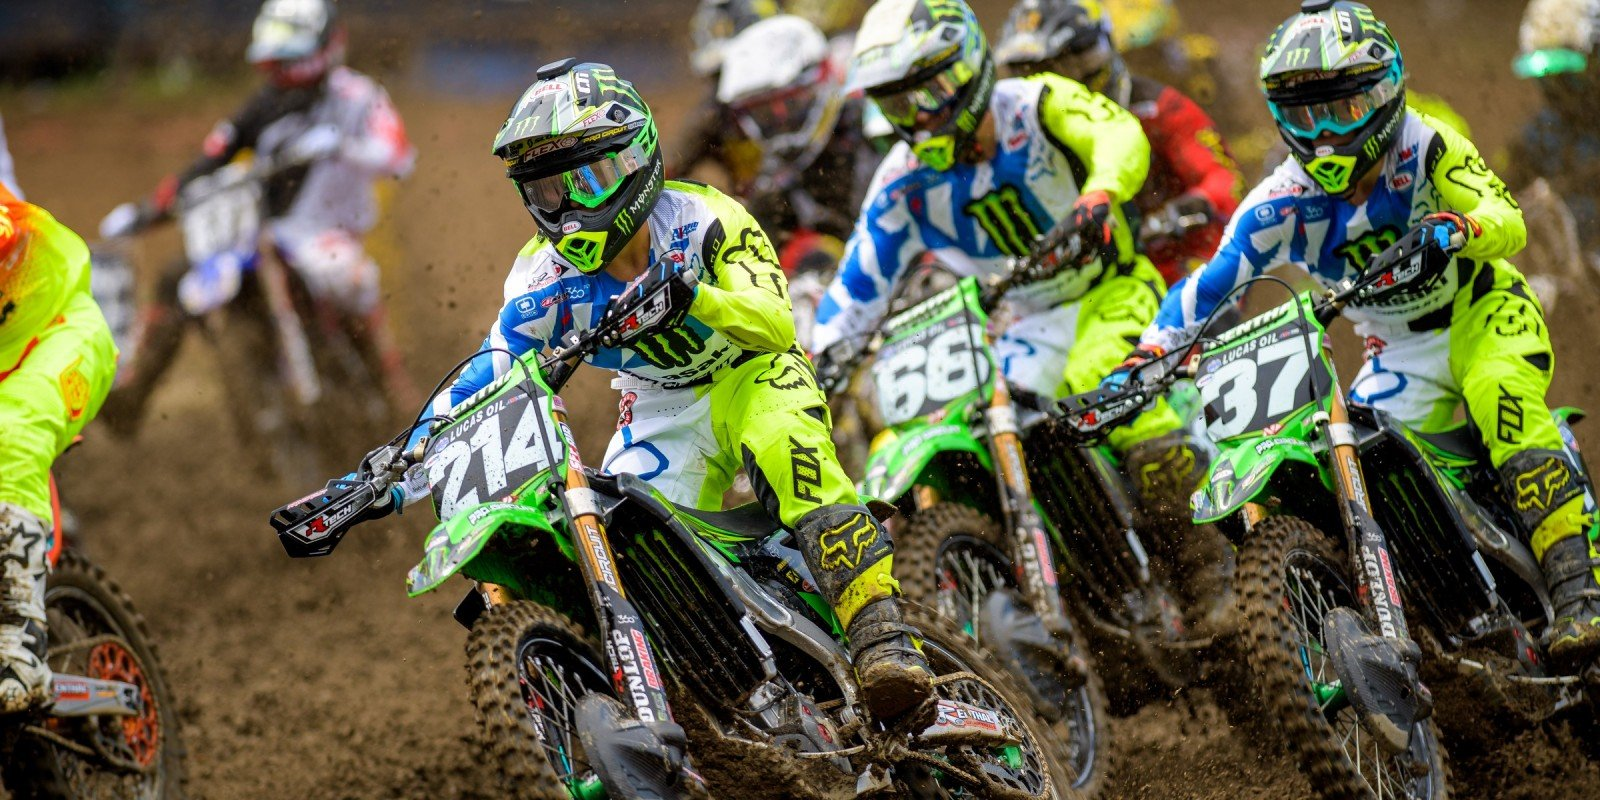 Starting LIne during the 2016 Pro MX Nationals in Iron Man Racewary Crawfordsville, Indiana